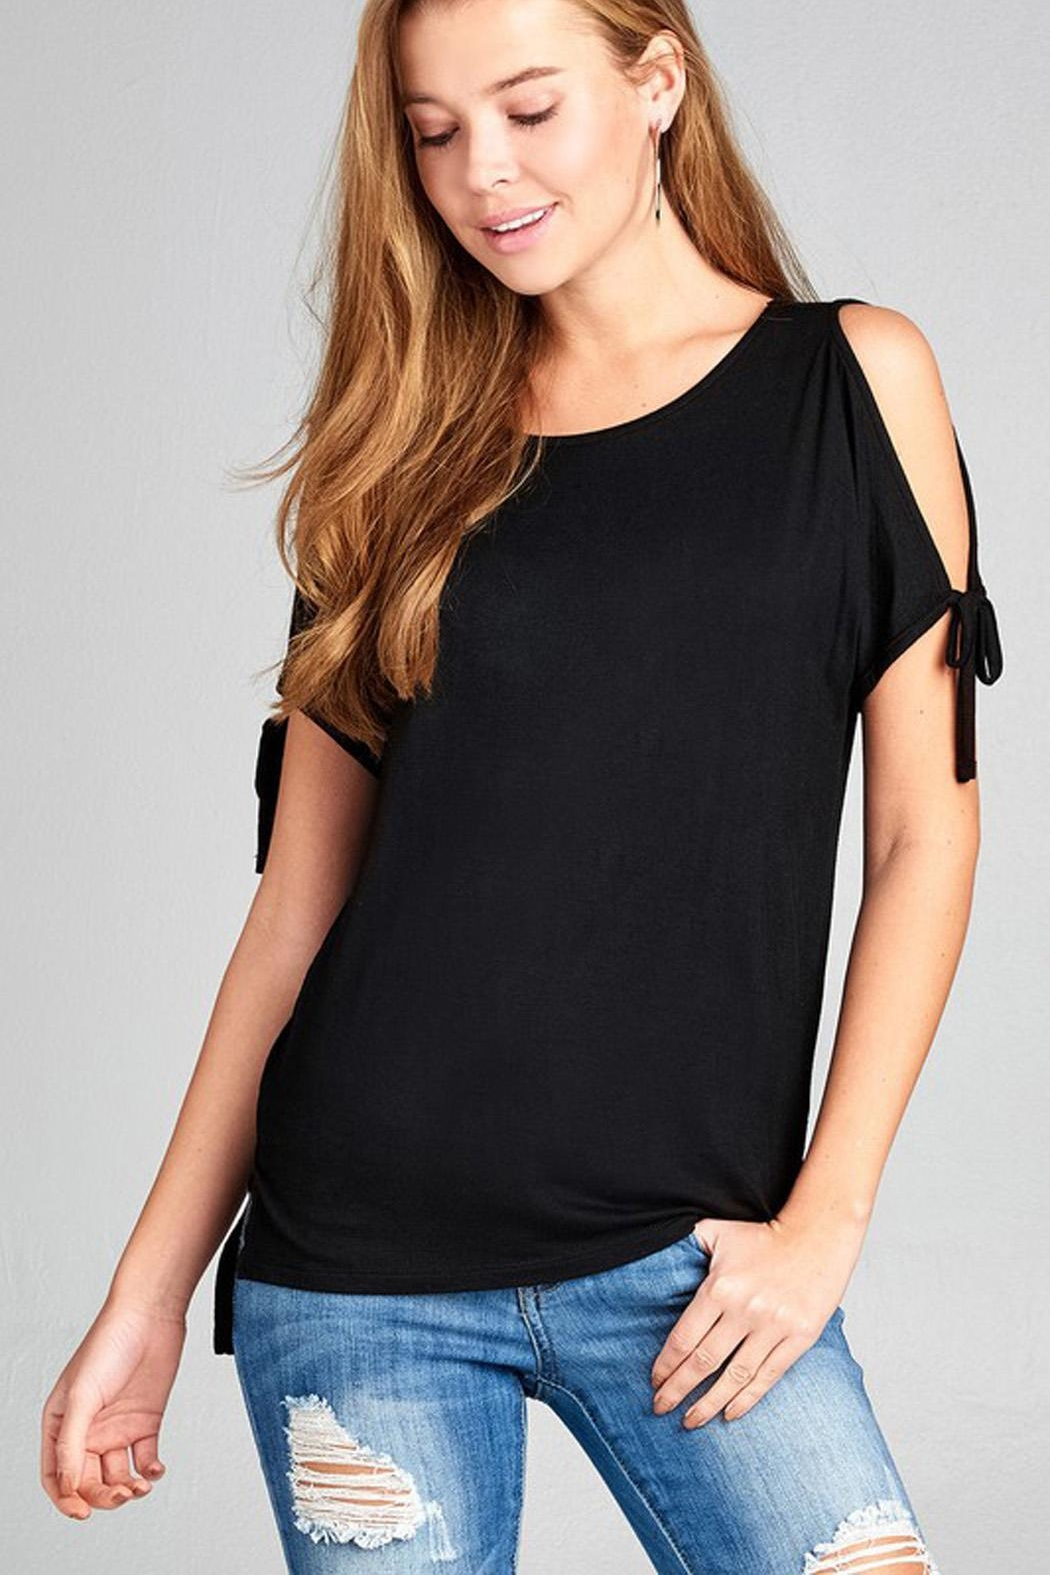 ambiance apparel Tie Shoulder Top - Front Cropped Image